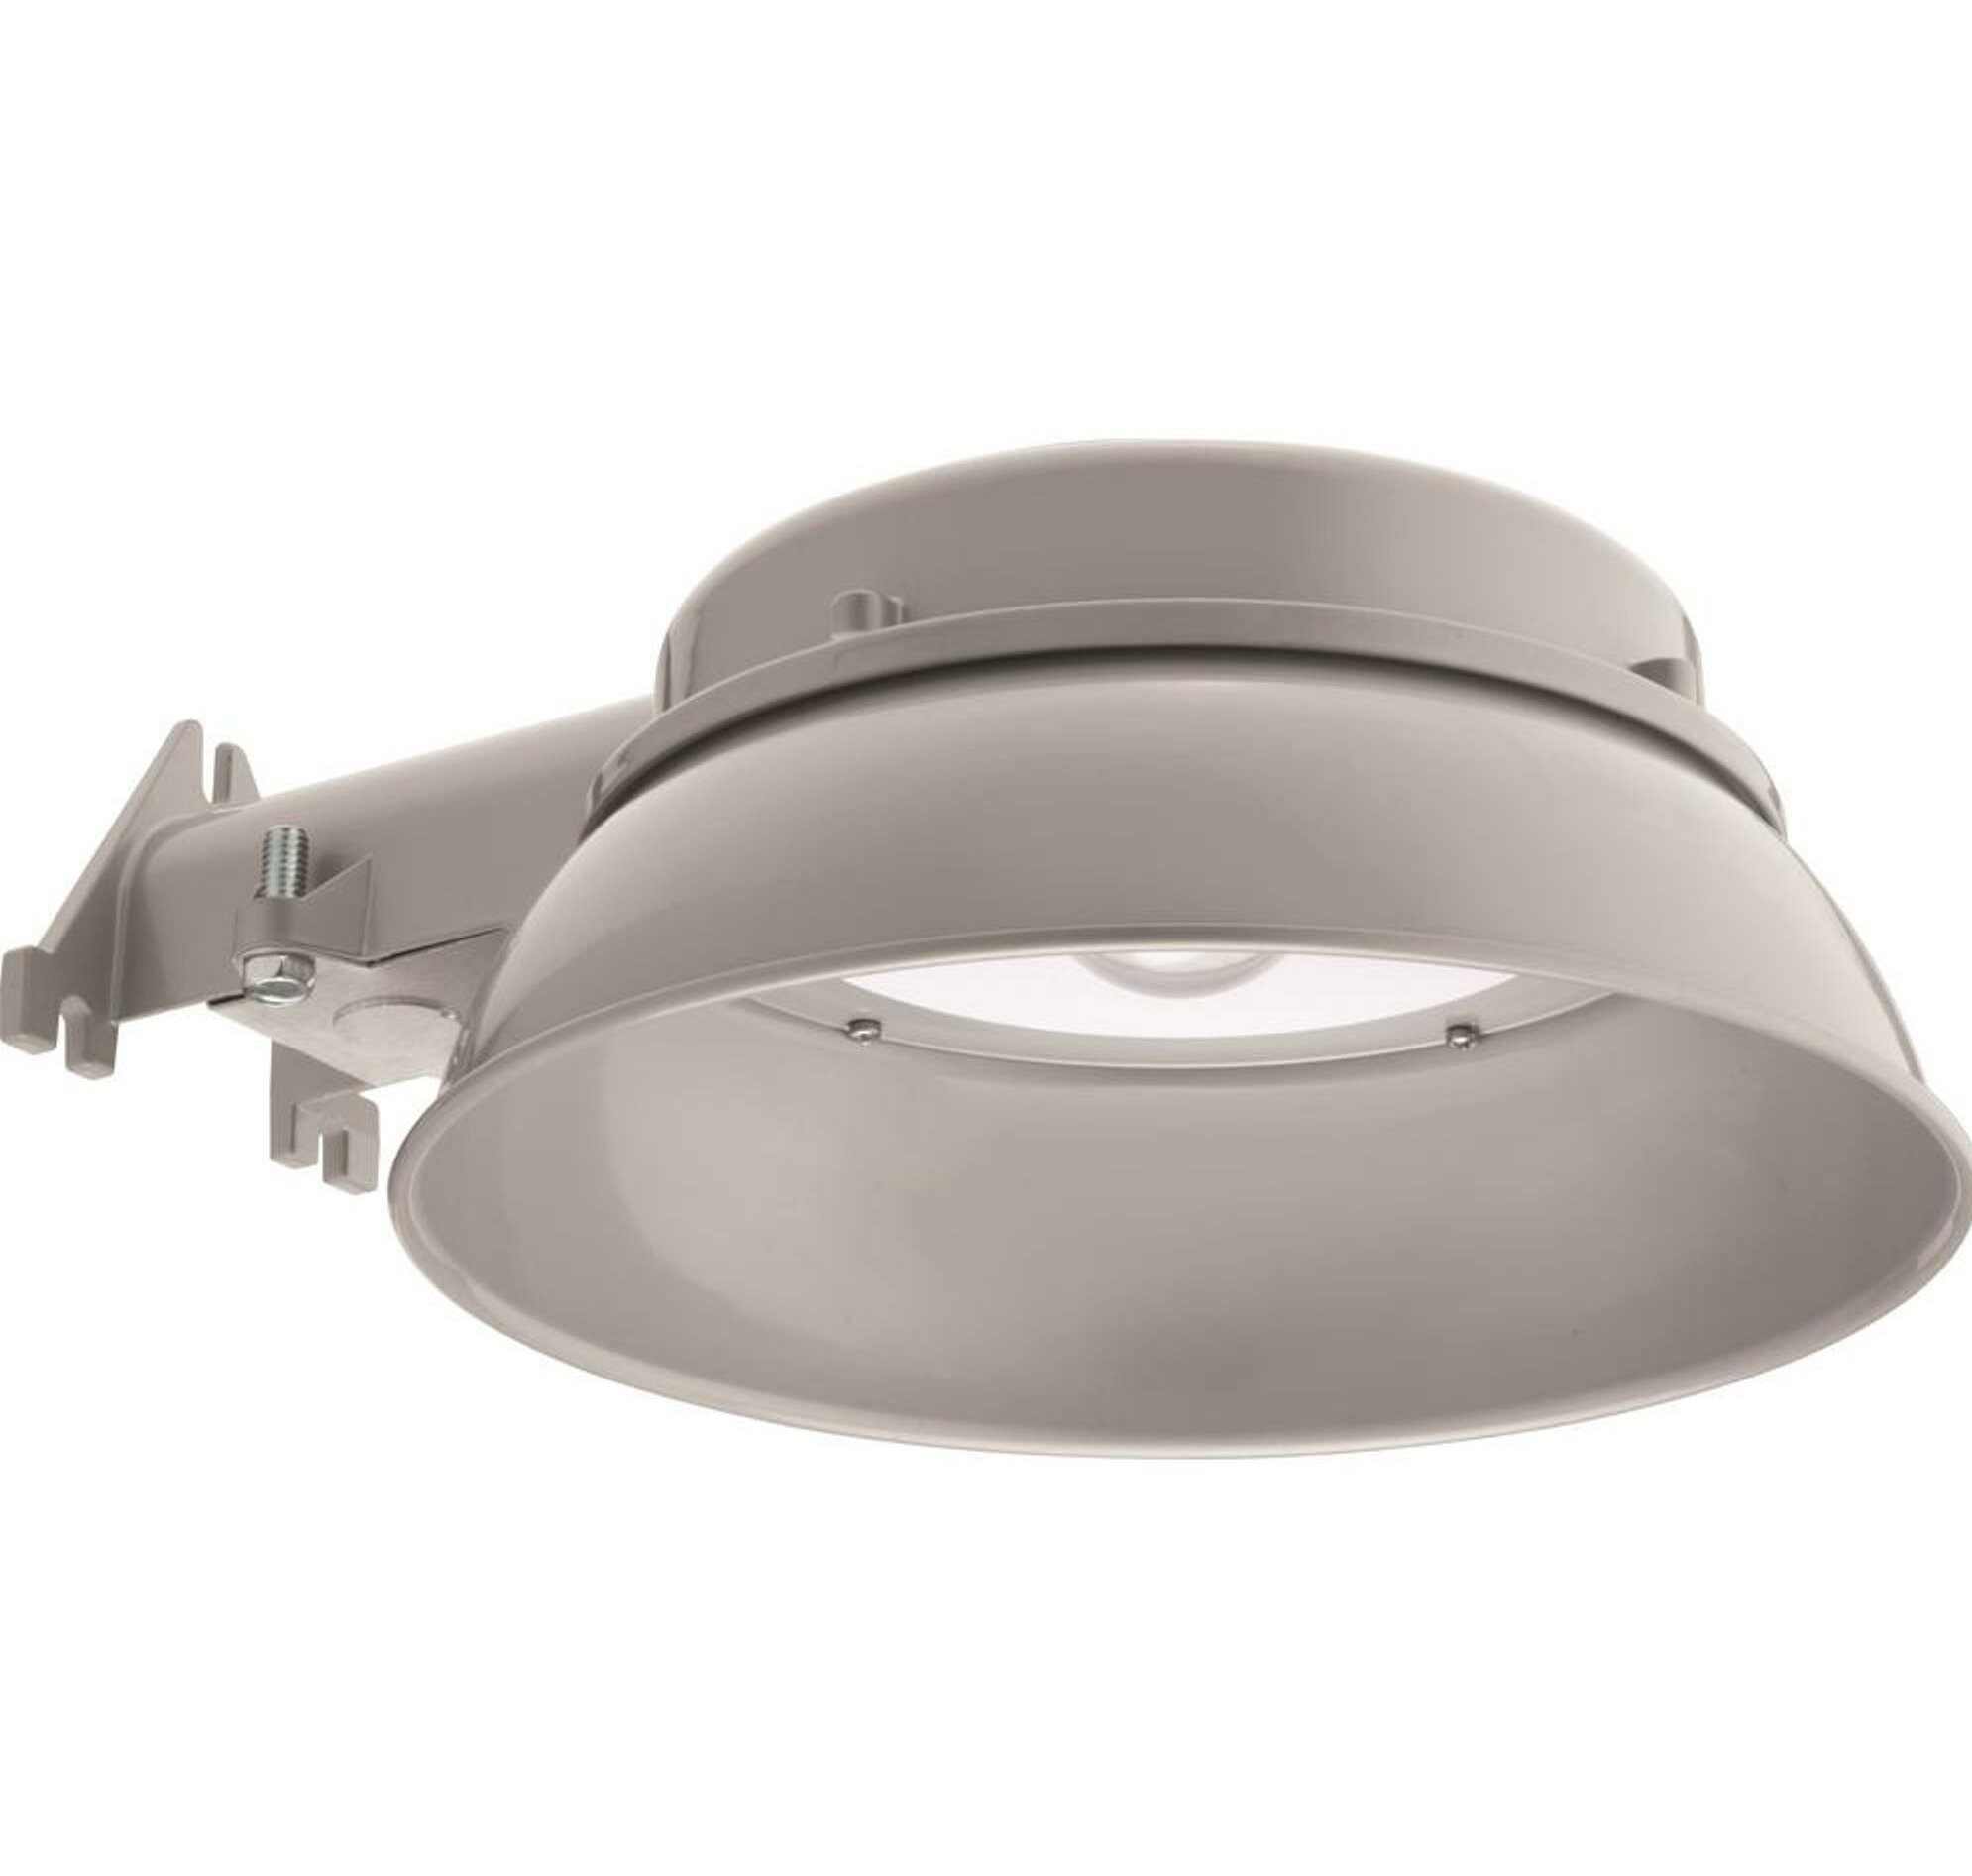 Lithonia Outdoor Security Lighting: Lithonia Lighting Integrated Outdoor LED Area Light